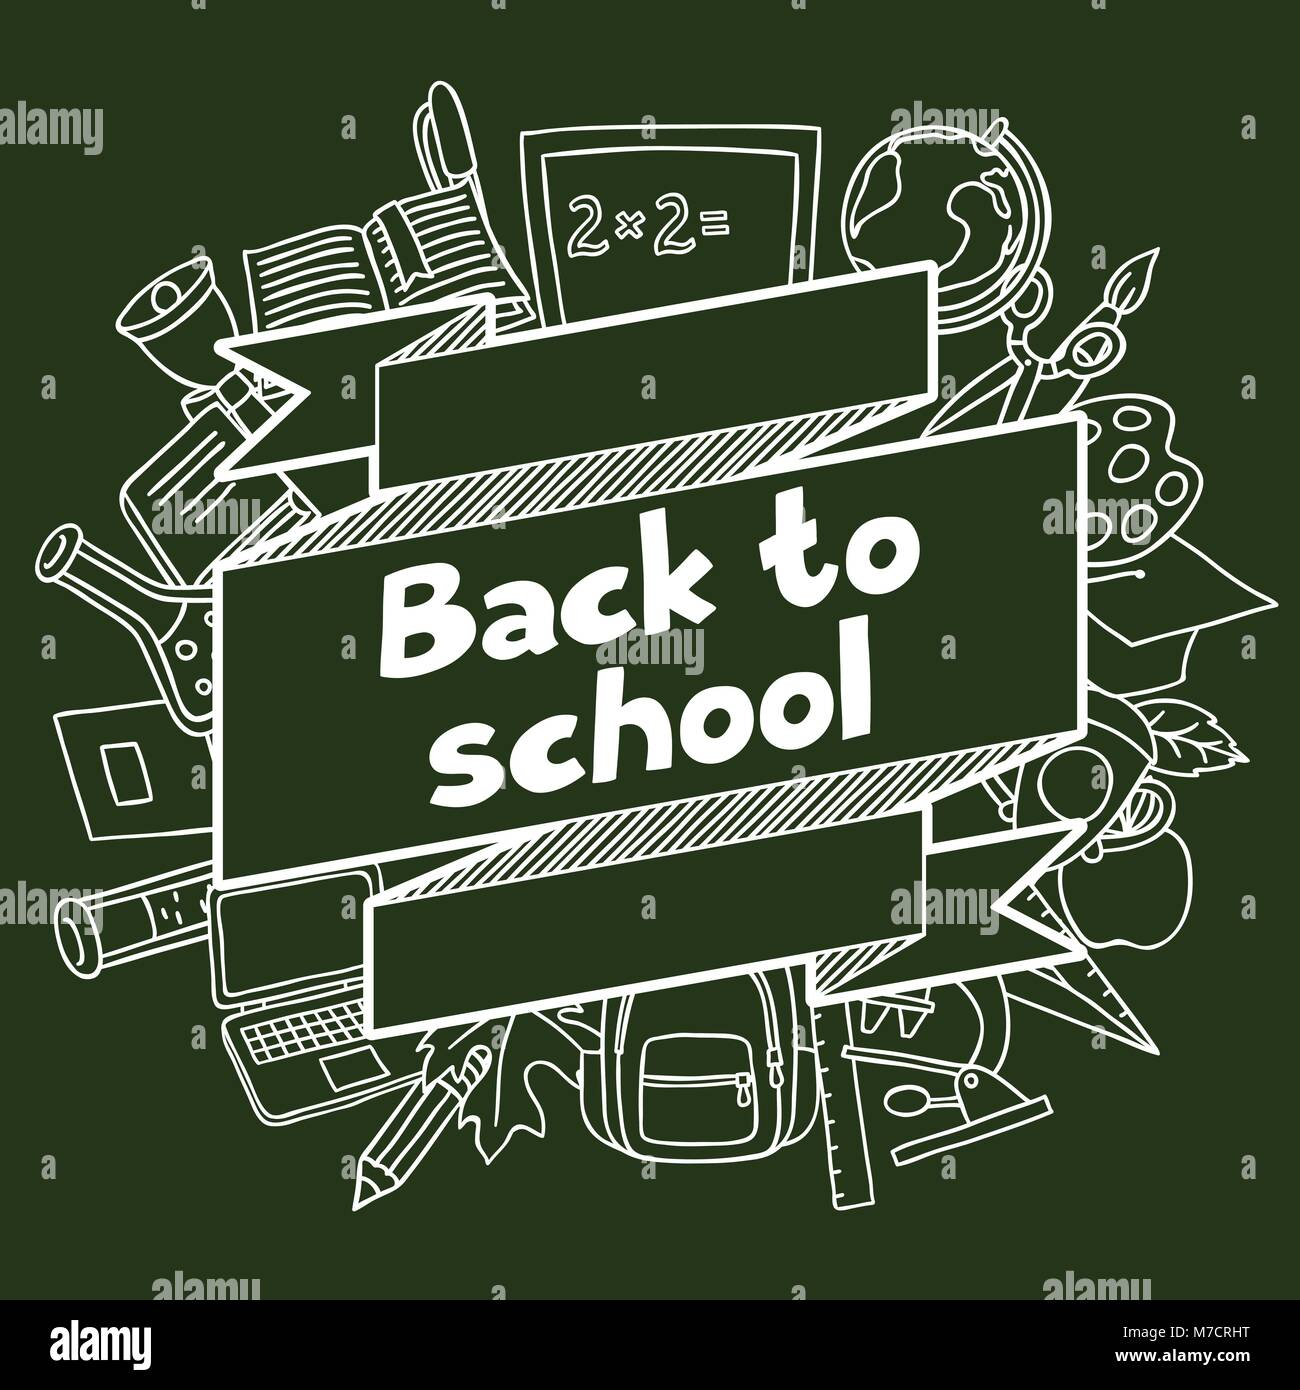 Back to school background with hand drawn icons on chalk board - Stock Image